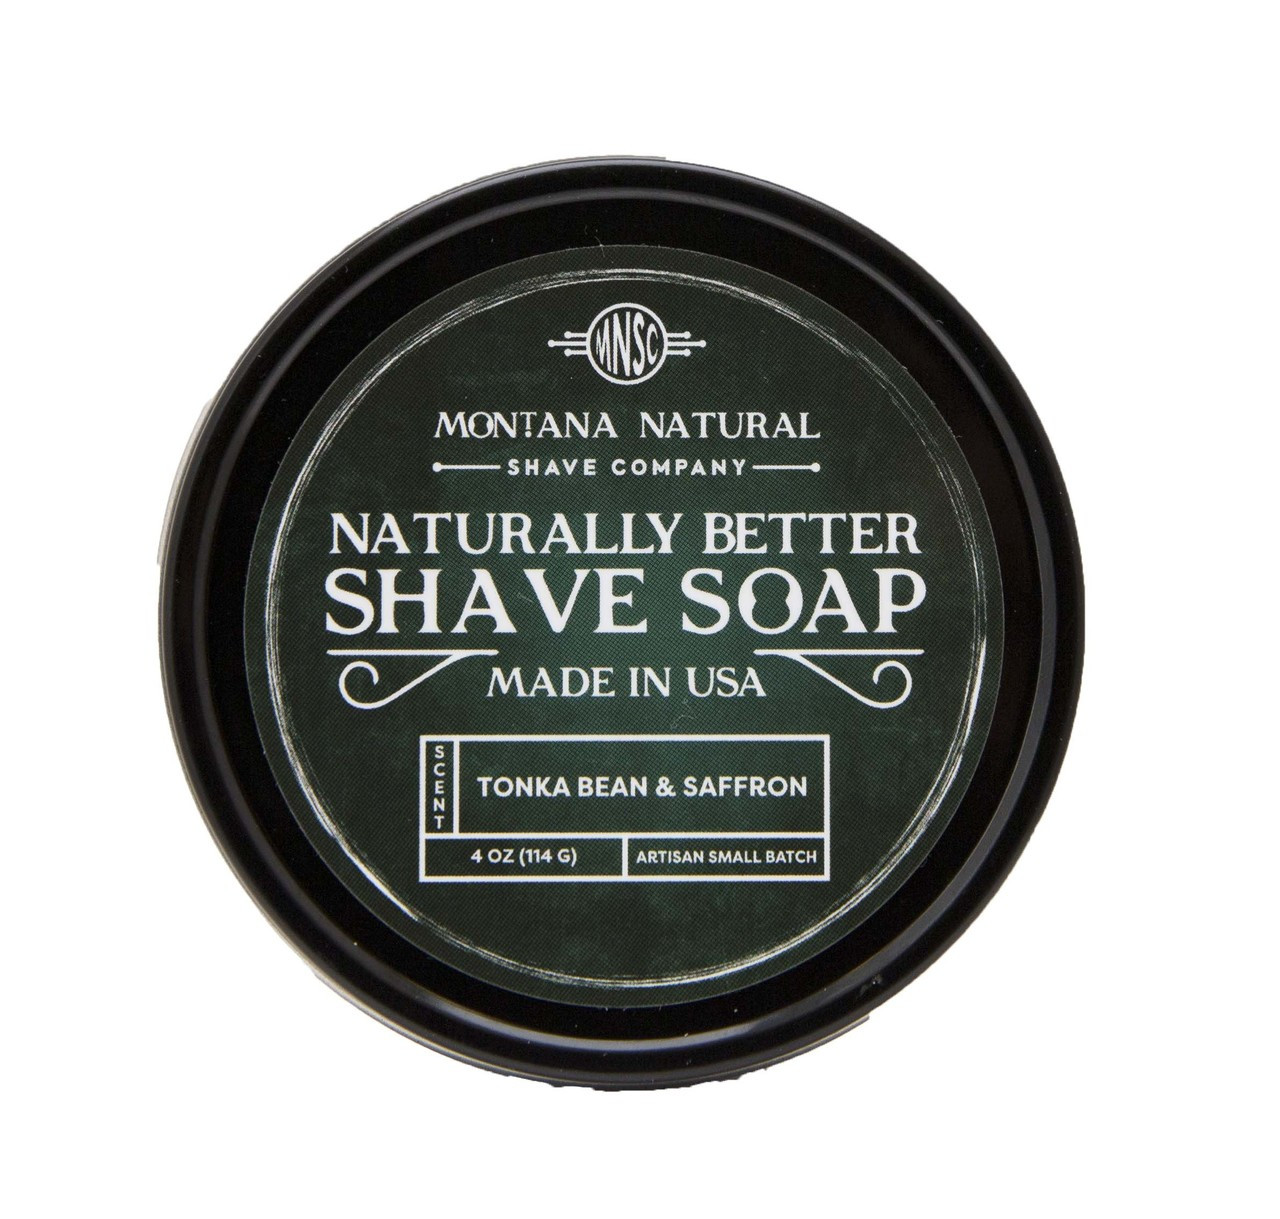 Tonka Bean & Saffron Artisian Small Batch Shave Soap for a Naturally Better Shave Experience